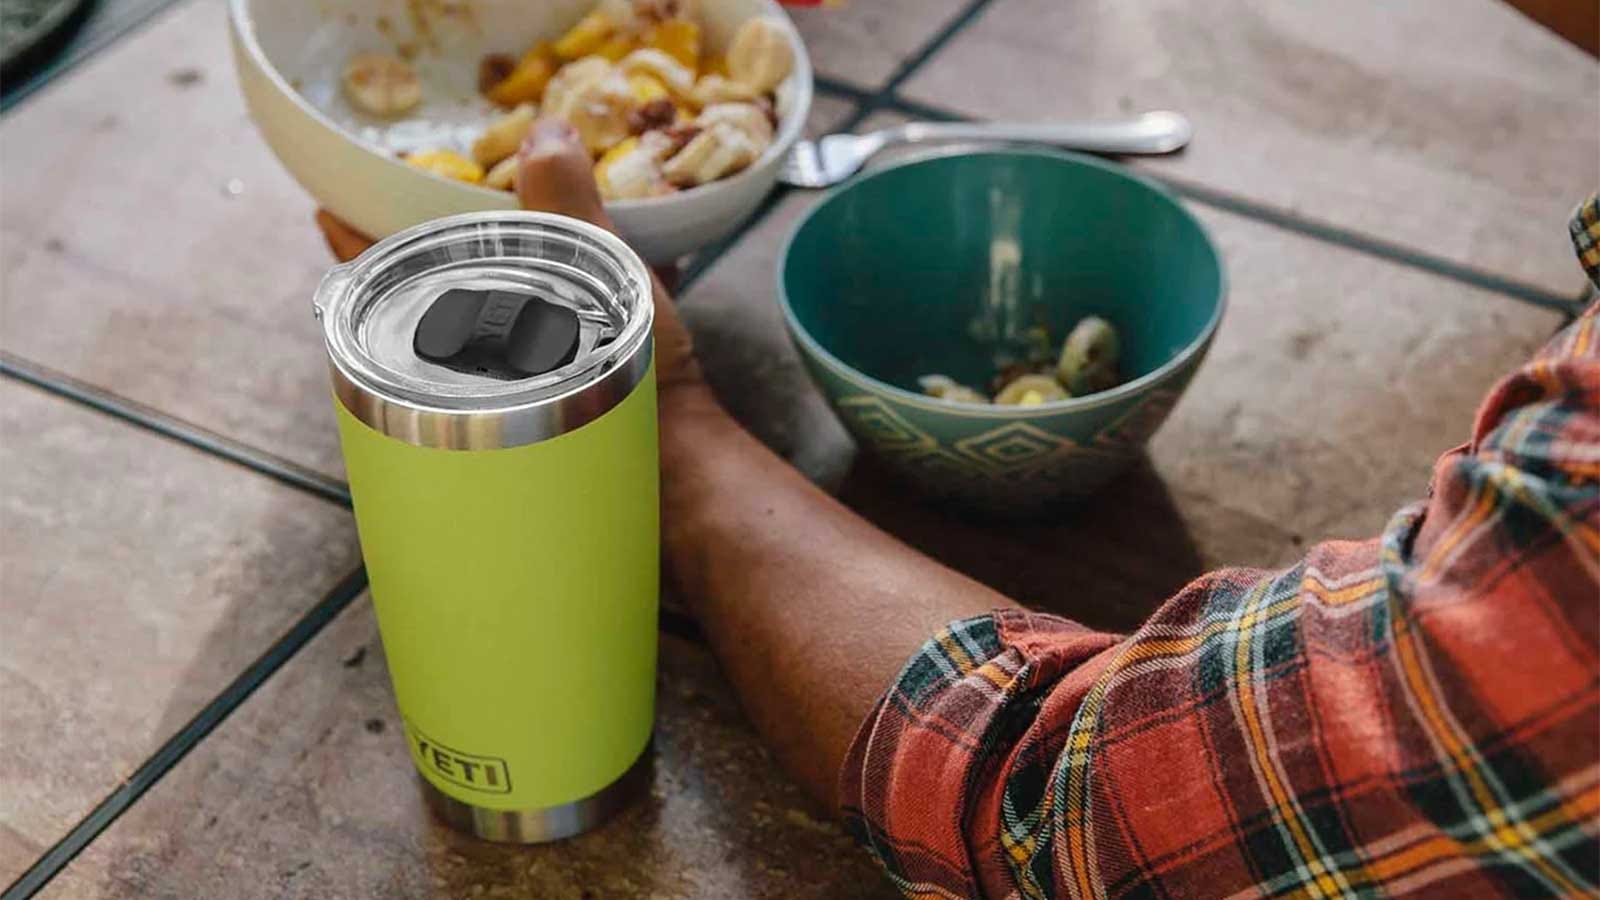 A YETI tumbler, sitting on a tile counter next to a man eating lunch.